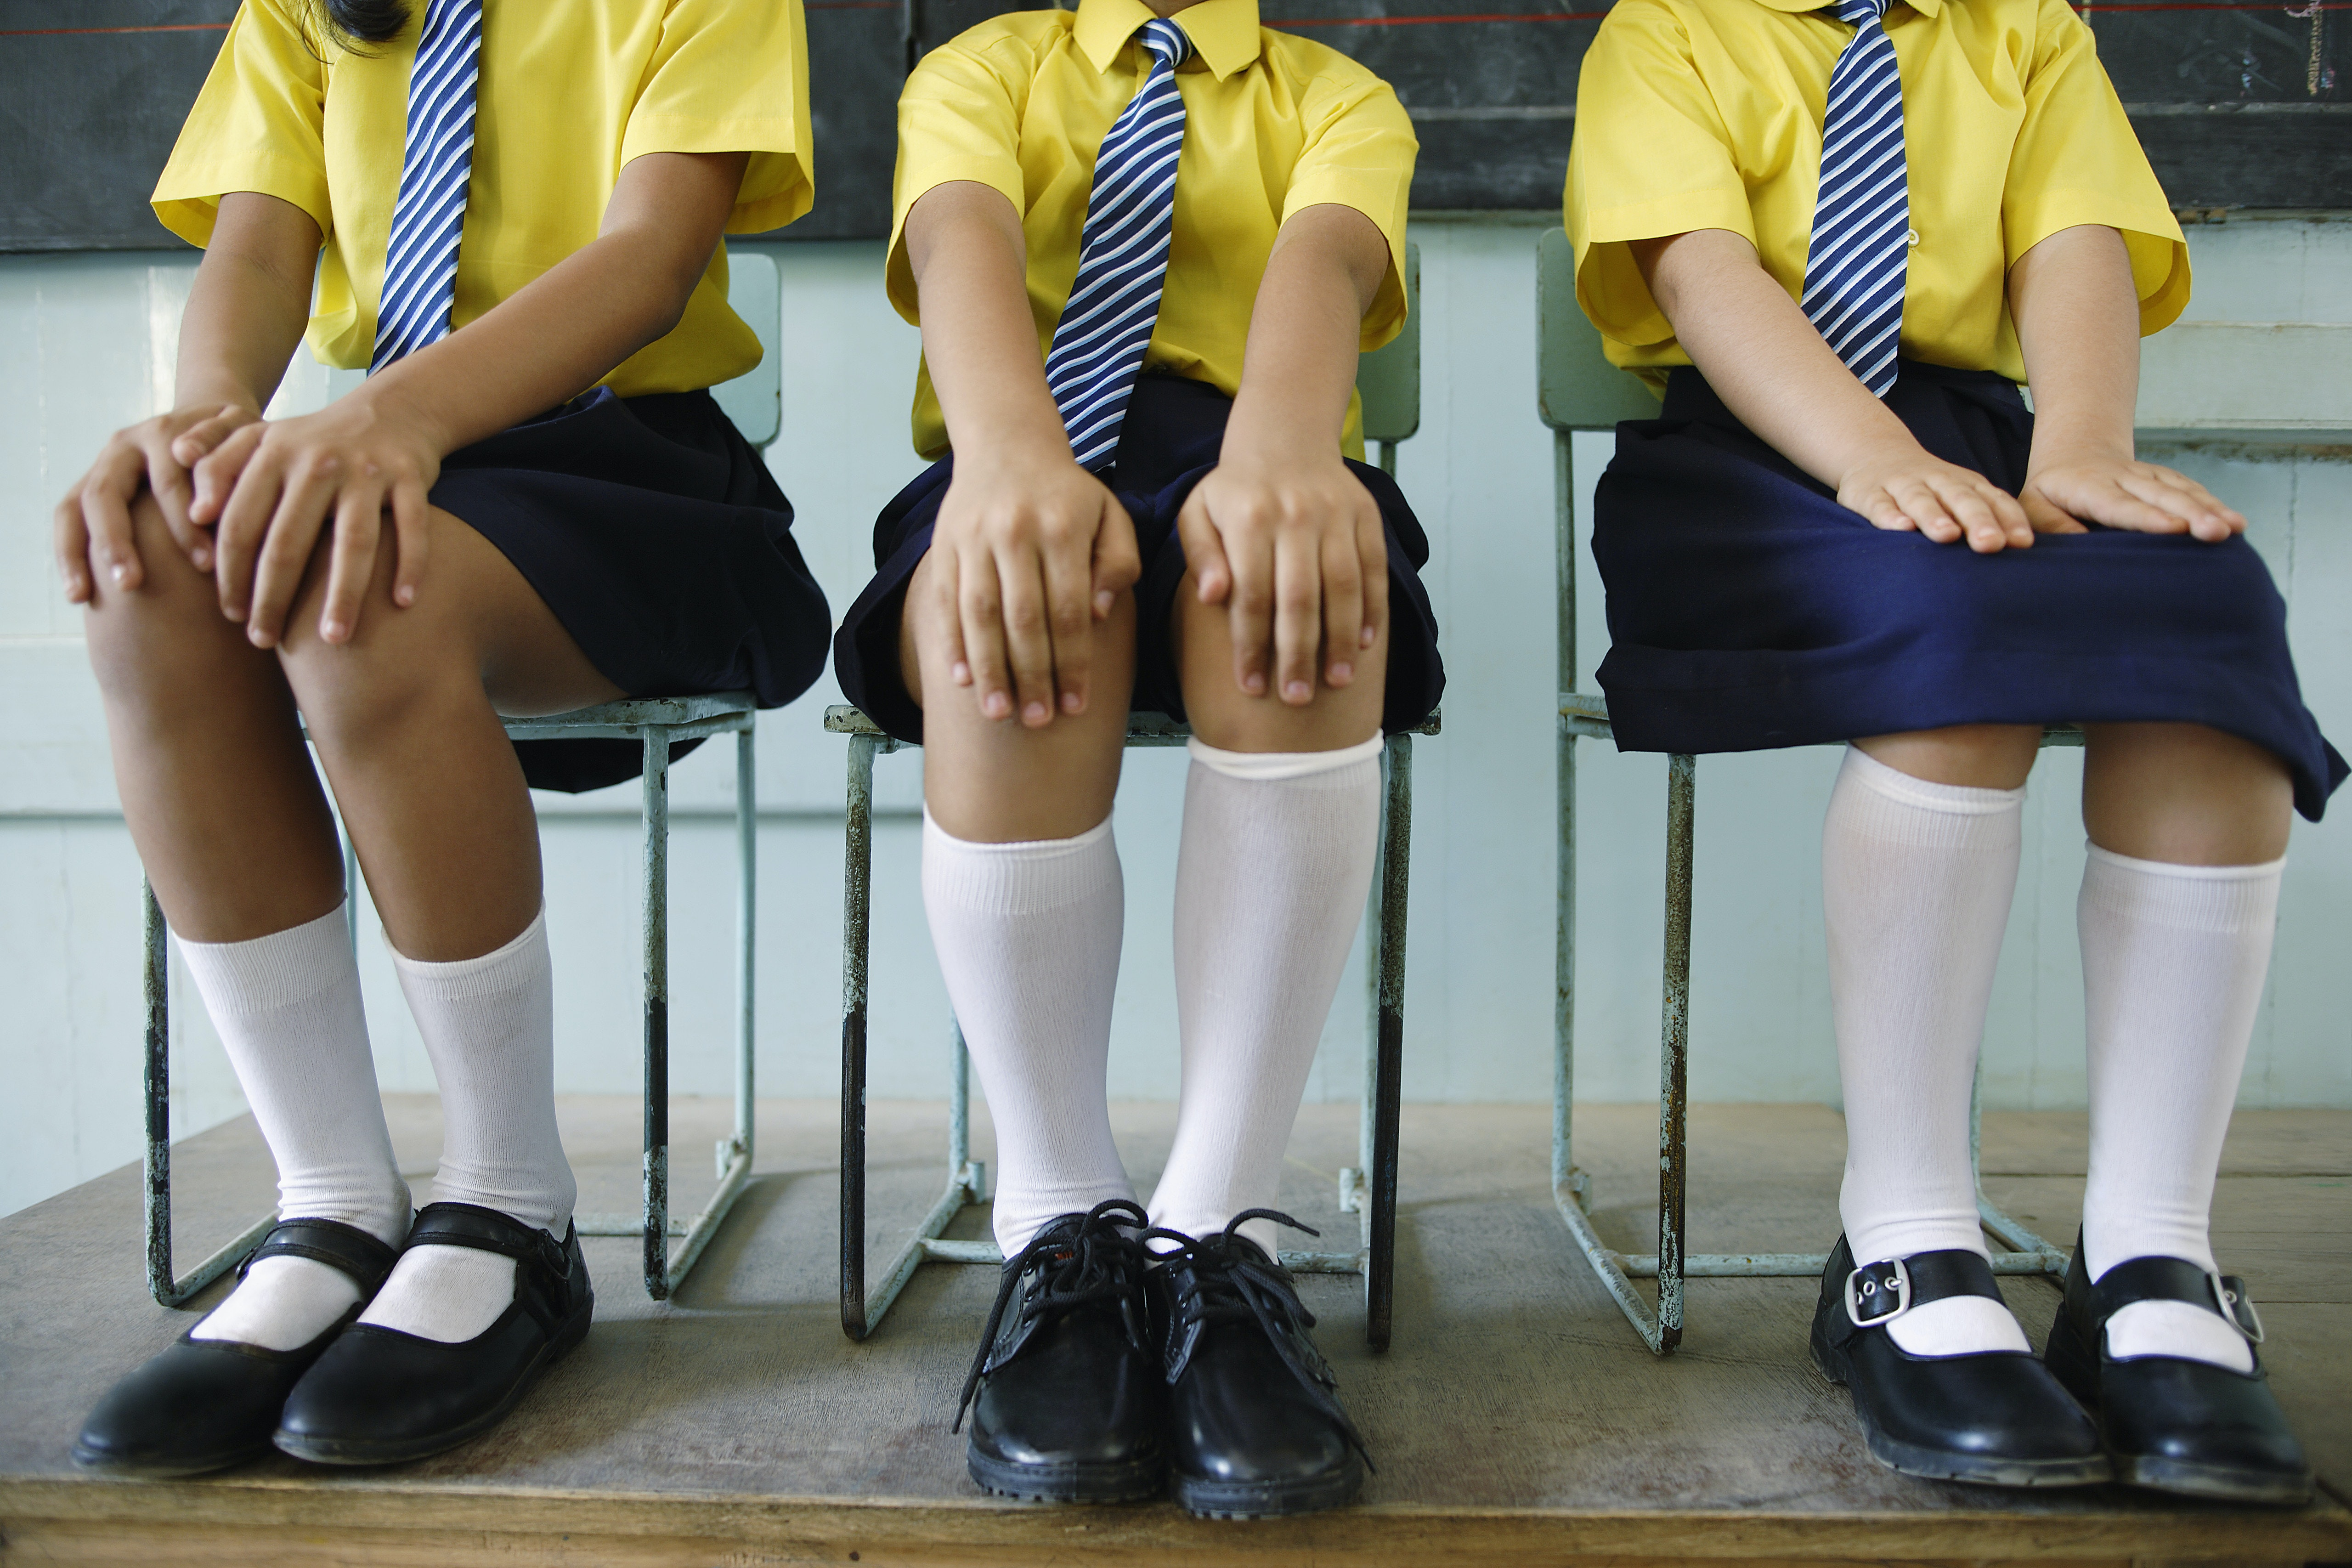 students should be wearing uniforms to prevents violence in schools The question of whether children should wear a uniform to school  uniforms  can actually lead to more violence, as they make students from  religious beliefs  through the way they dress, and uniform stops them doing this.